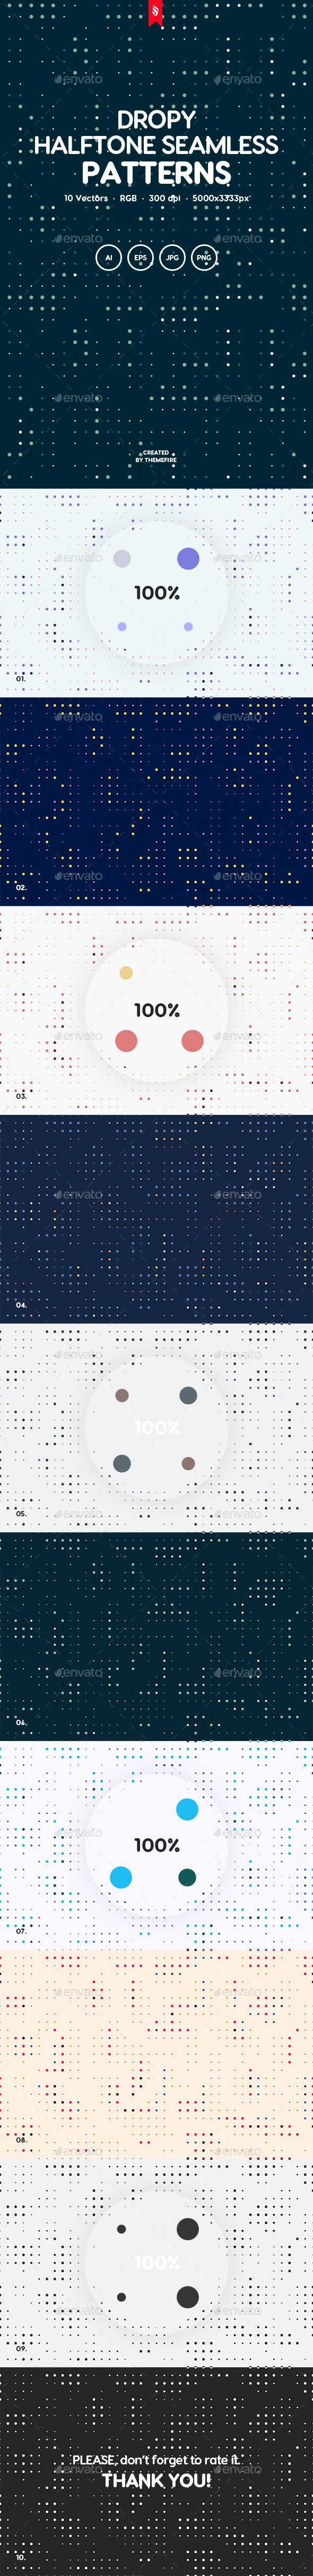 Dropy - Splattered Halftone Seamless Patterns - Patterns Backgrounds